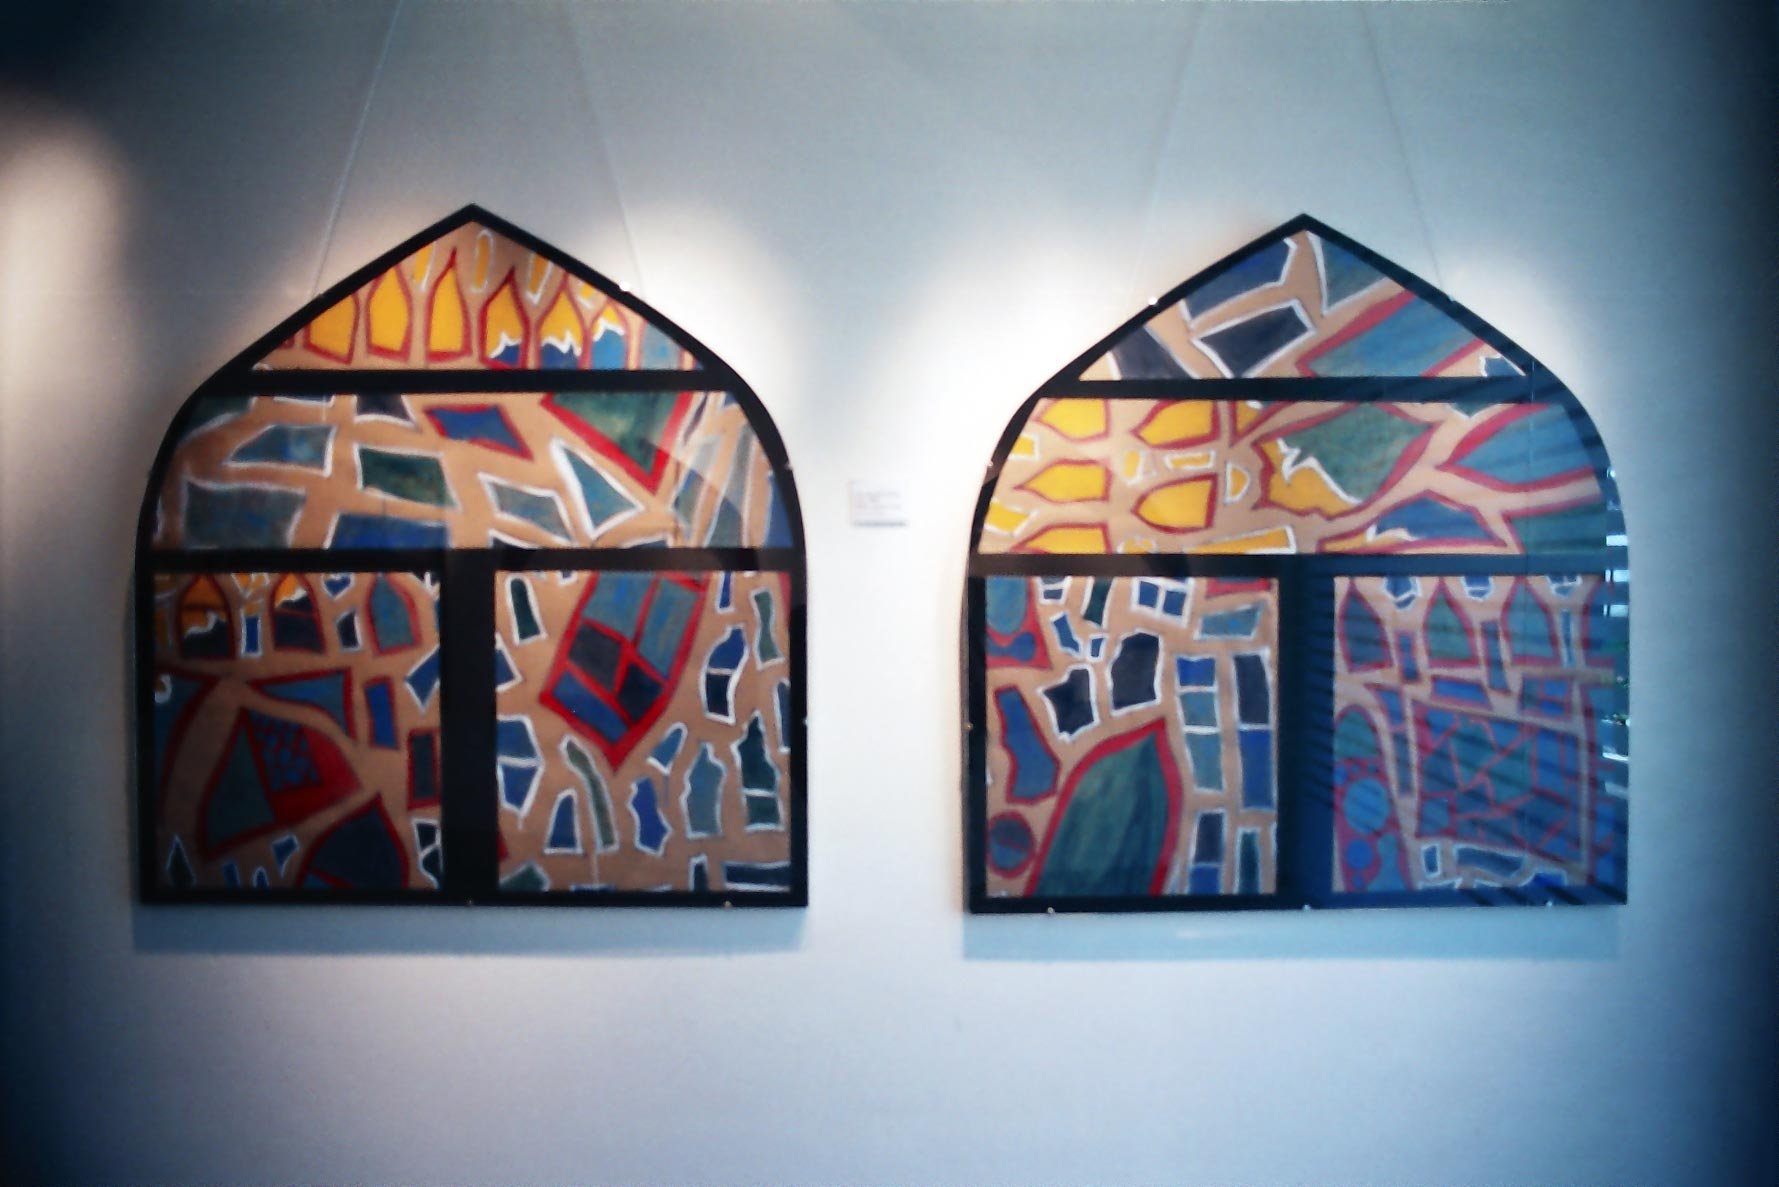 Apartment Building (2007) acrylic on canvas (2 pieces) 1.22H x 2.29W meters